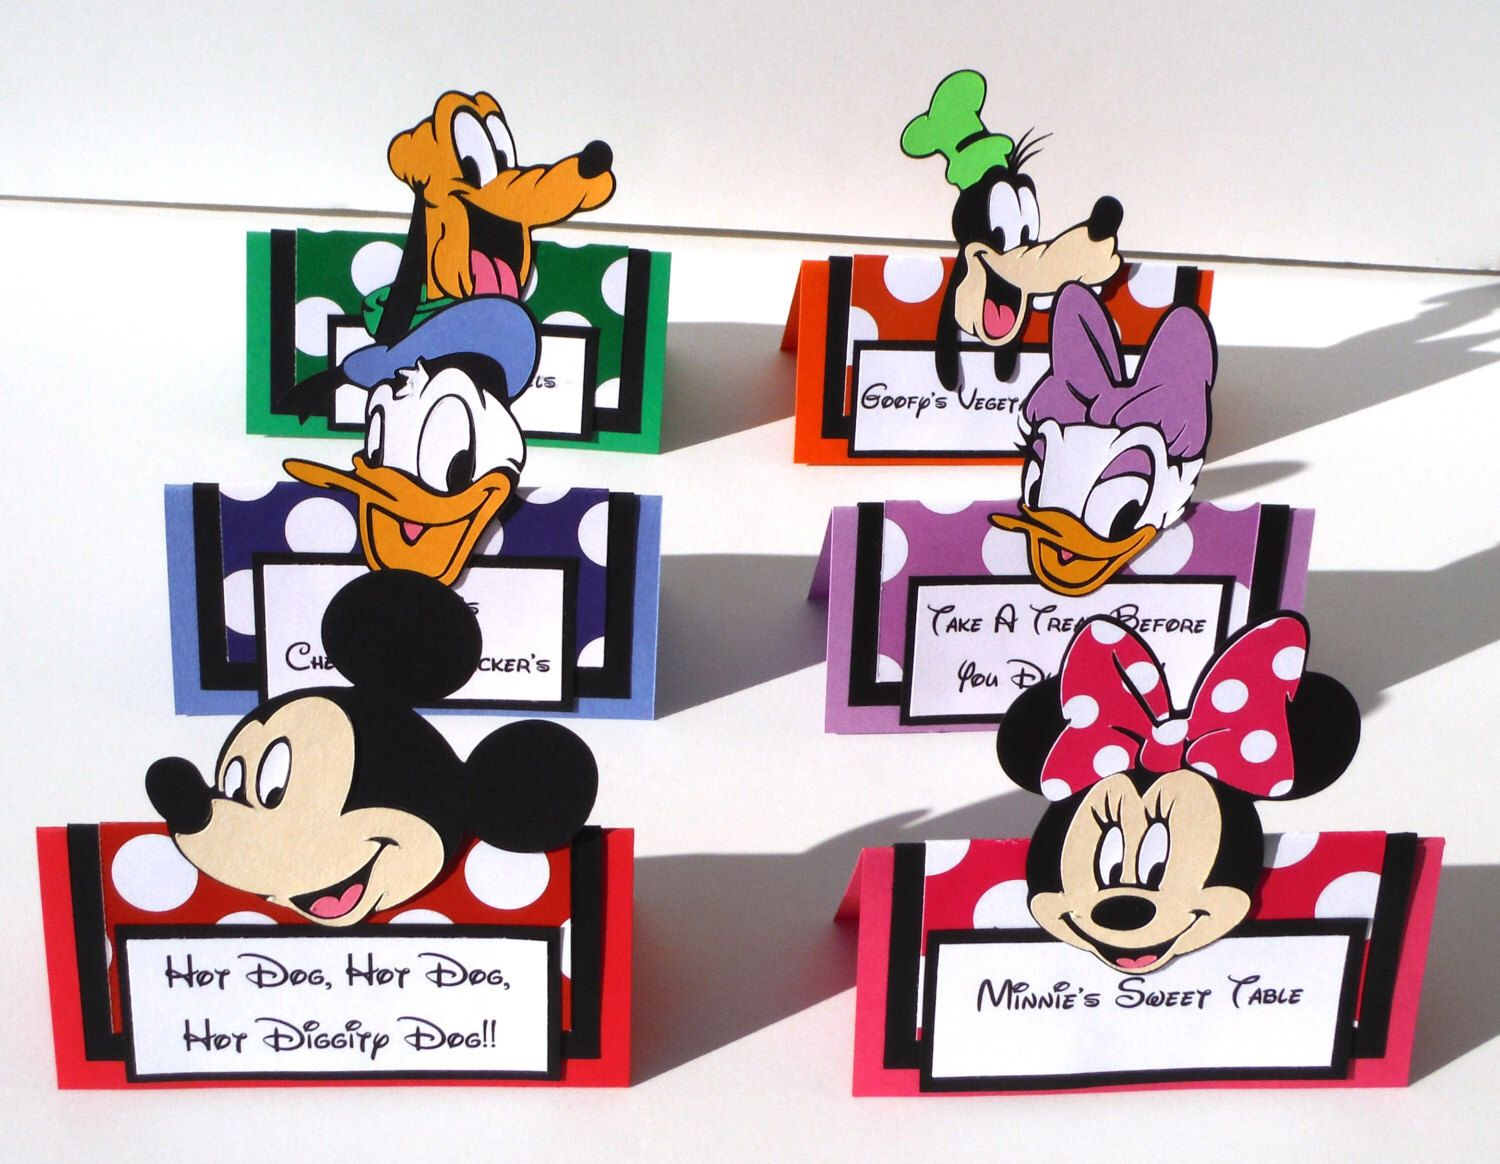 6 Mickey Mouse Clubhouse Themed Tent Style Food Table Labelu0027s / Name Cards Minnie Donald Daisy  sc 1 st  Pinterest & 6 Mickey Mouse Clubhouse Themed Tent Style Food Table Labelu0027s ...